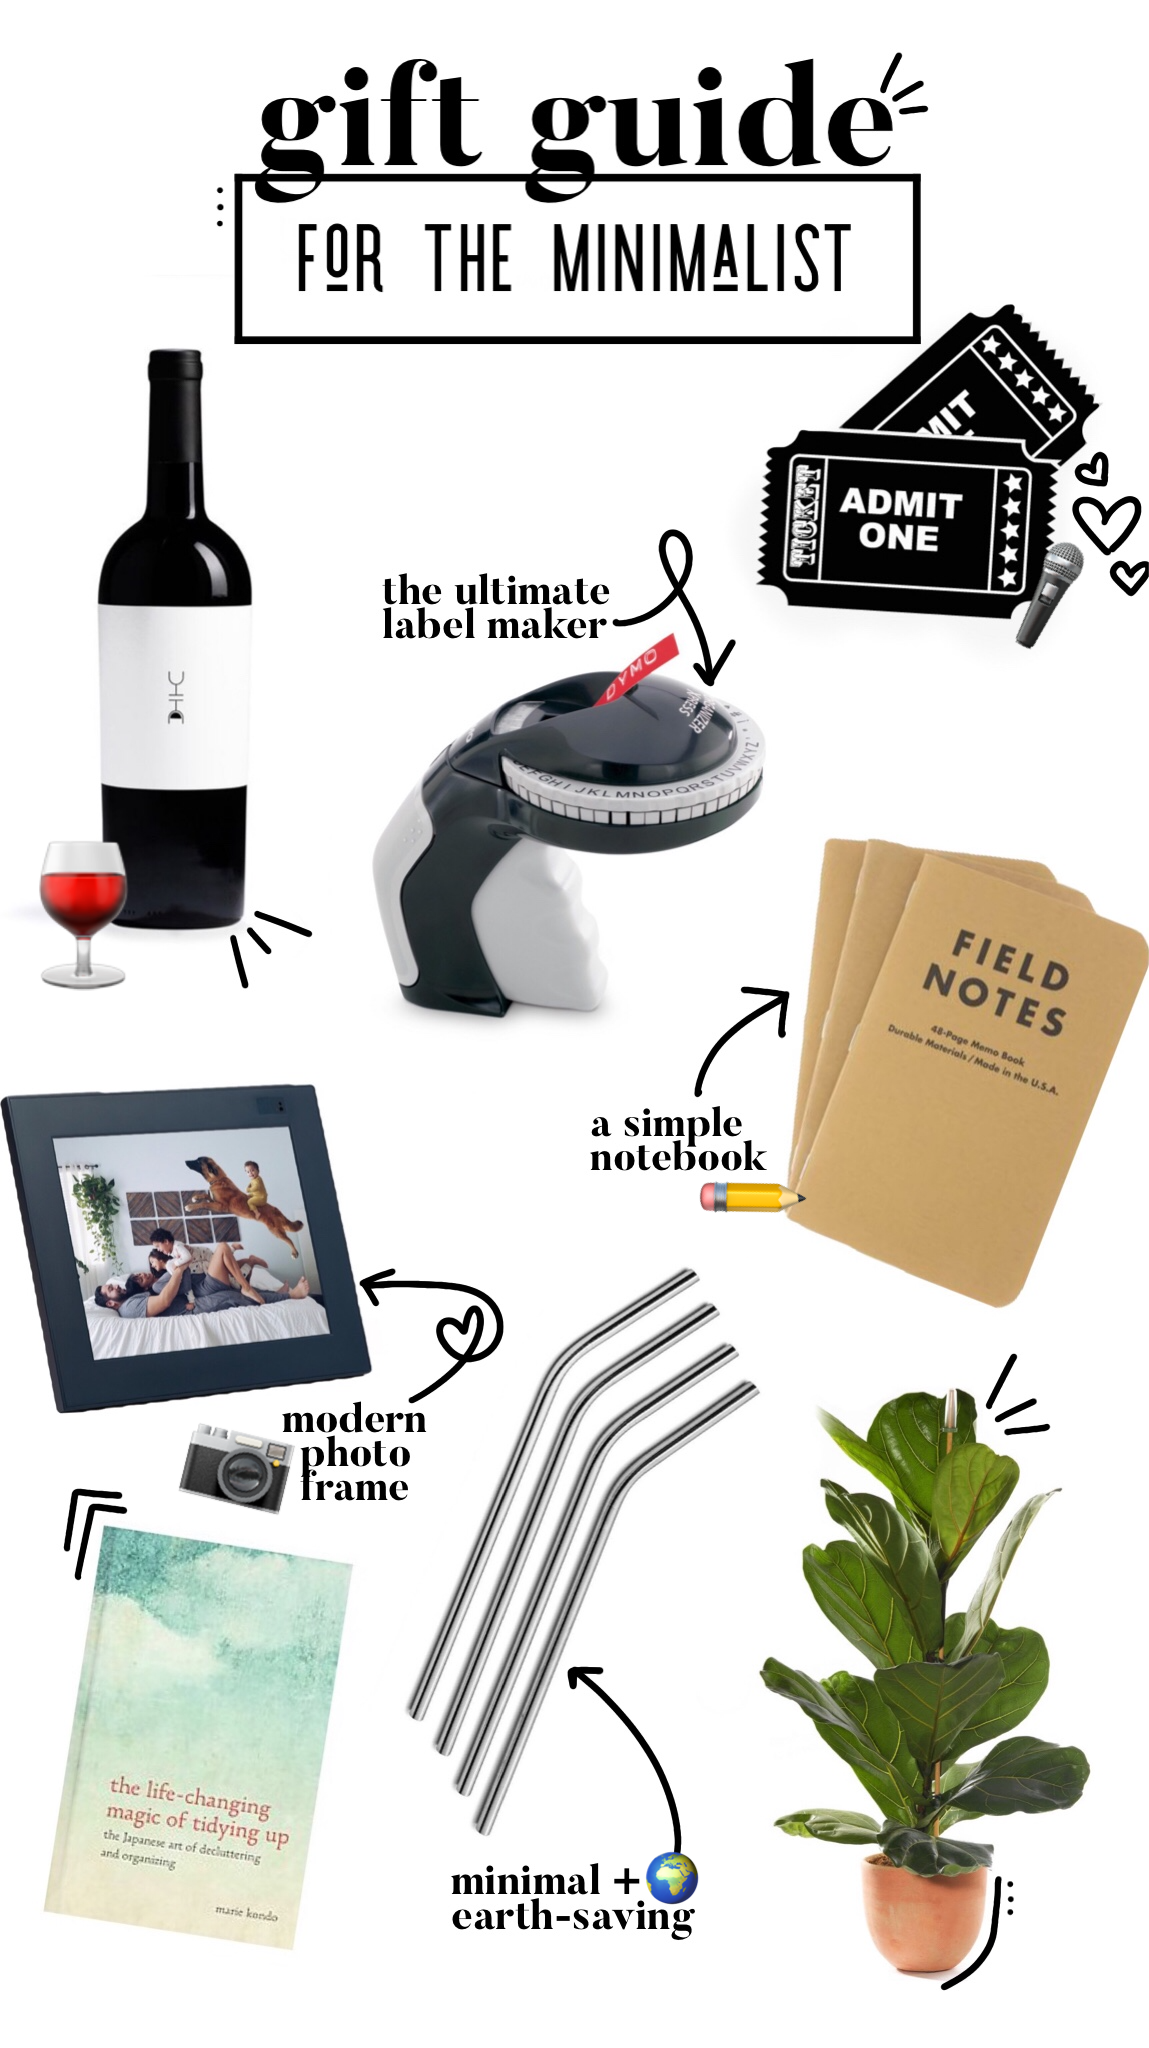 Gift Guide for The Minimalist